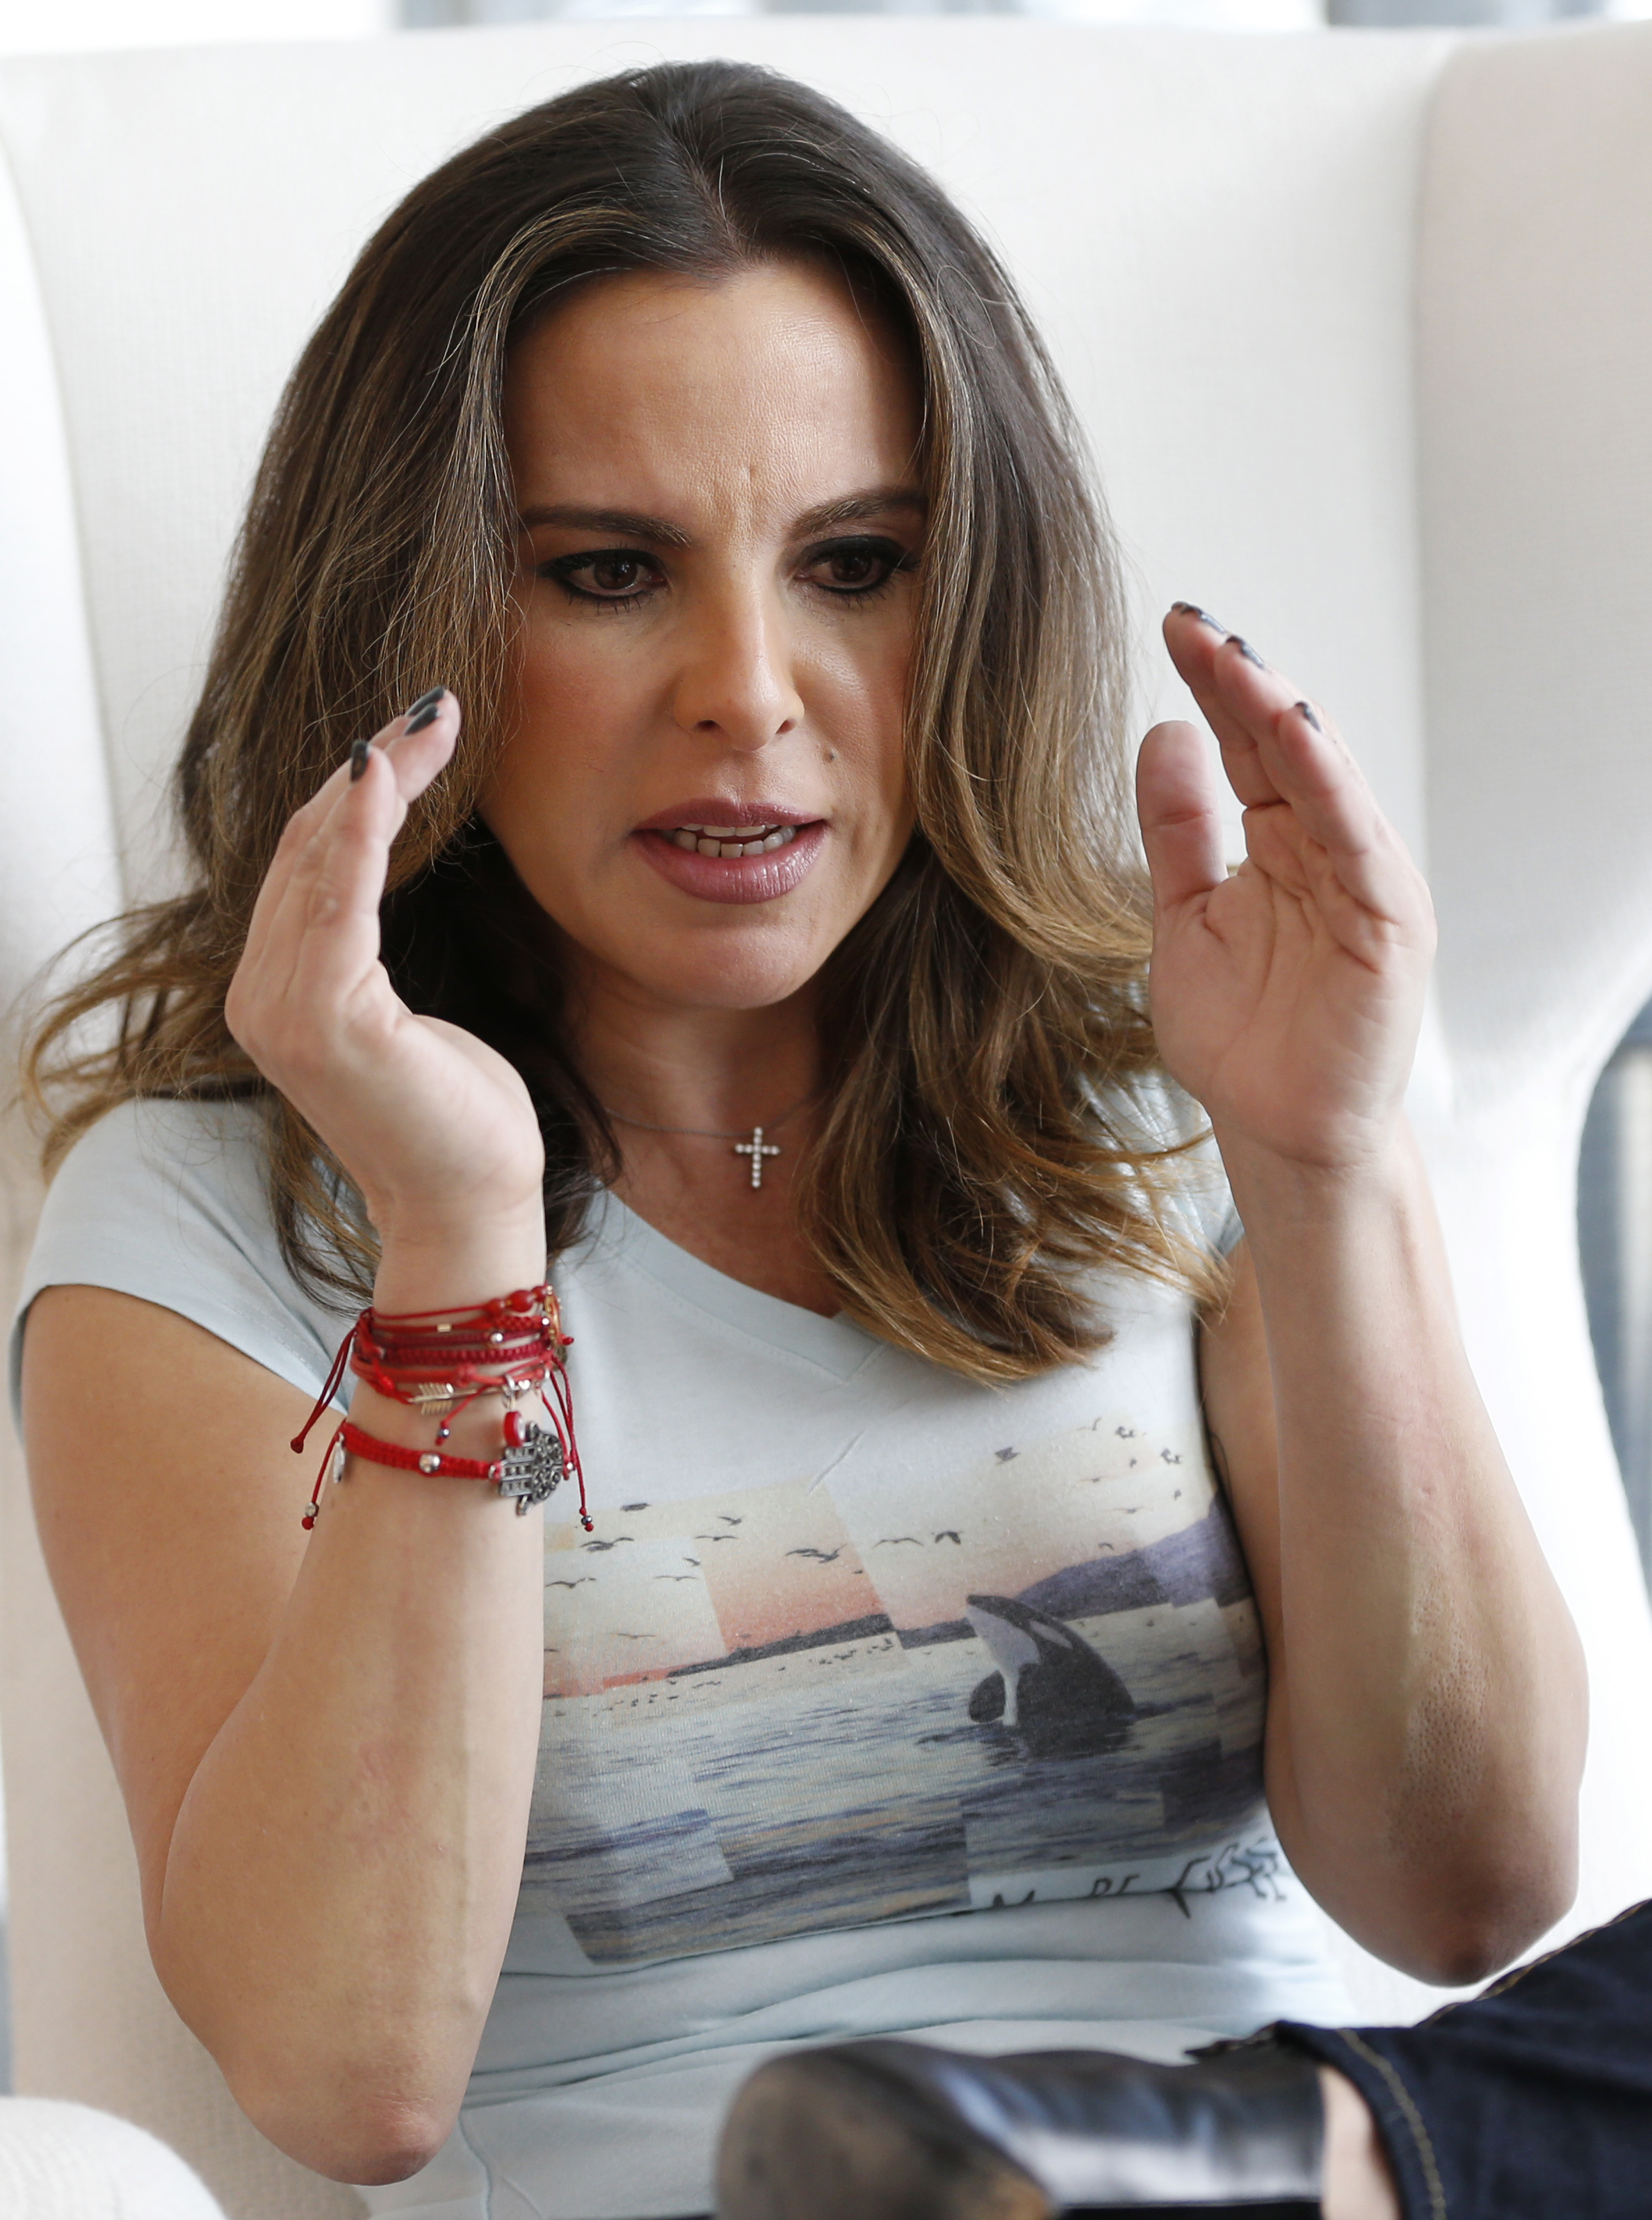 Mexican actress Kate del Castillo during an interview with The Associated Press in Miami on Jan. 16, 2017. (AP Photo/Wilfredo Lee)